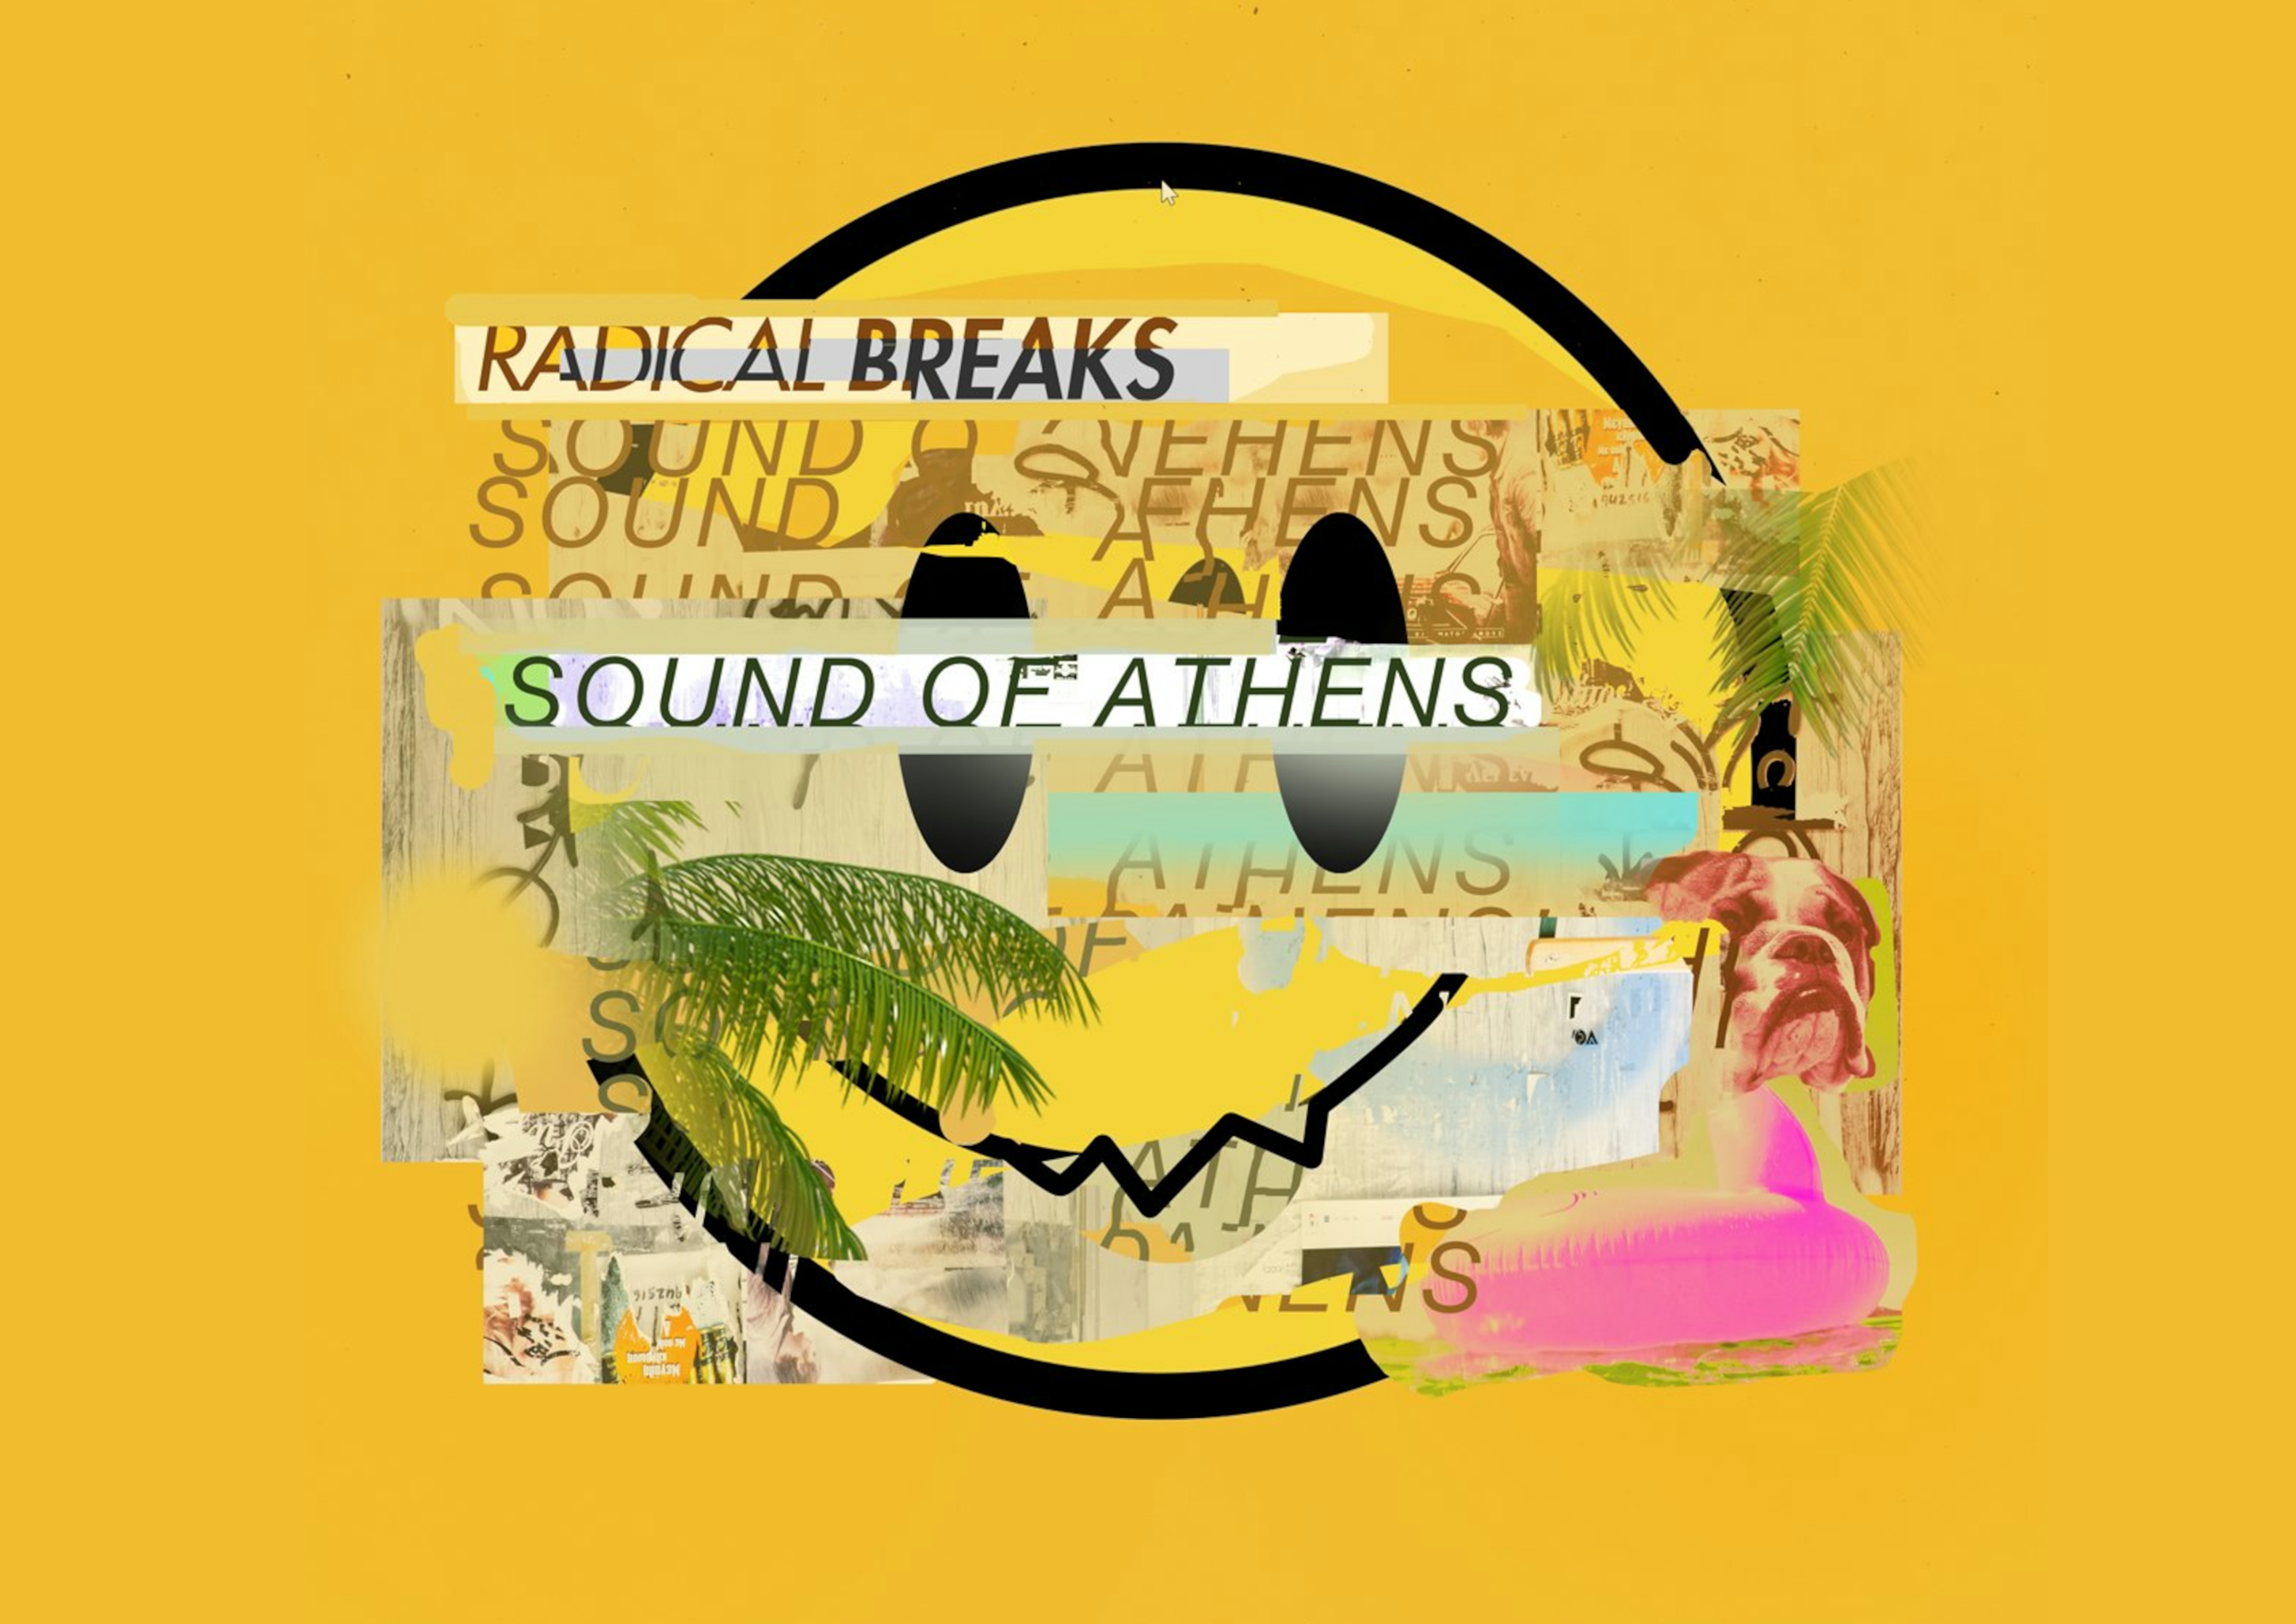 The Sound of Athens | Ο ήχος της Αθήνας